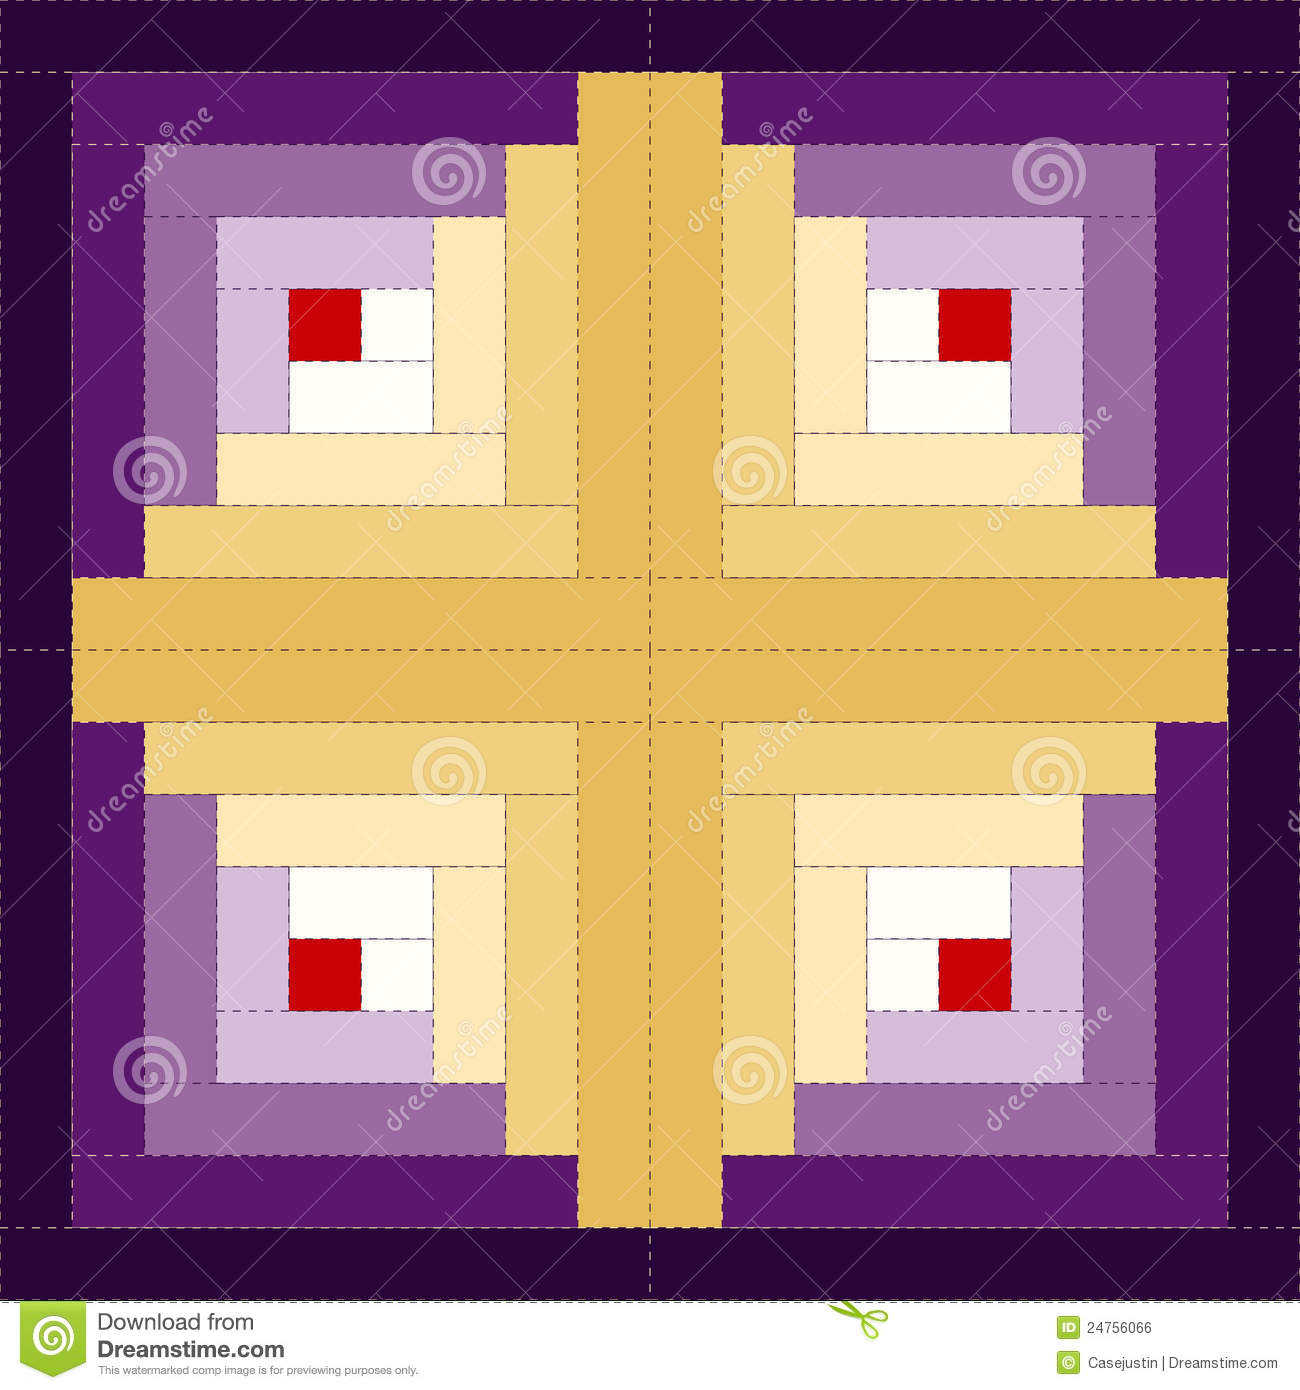 Barn Raising Quilt Pattern Free Knitting : Quilt, Log Cabin Pattern, Barn Raising Design Royalty Free Stock Image - Image: 24756066